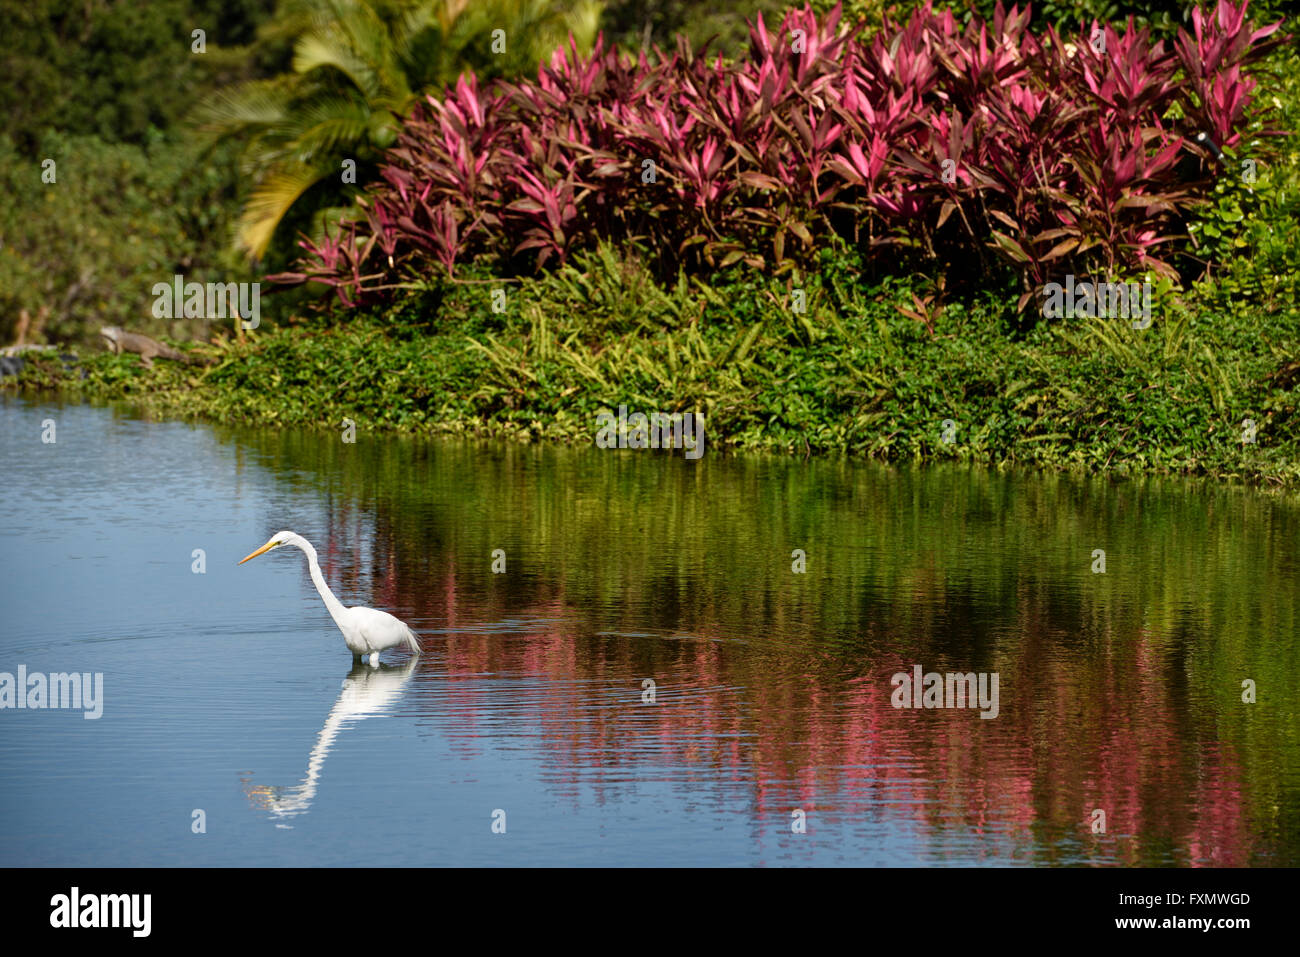 Great white egret hunting in a pond in a resort in Nuevo Vallarta Mexico with iguana and red Ti plant Mexico - Stock Image